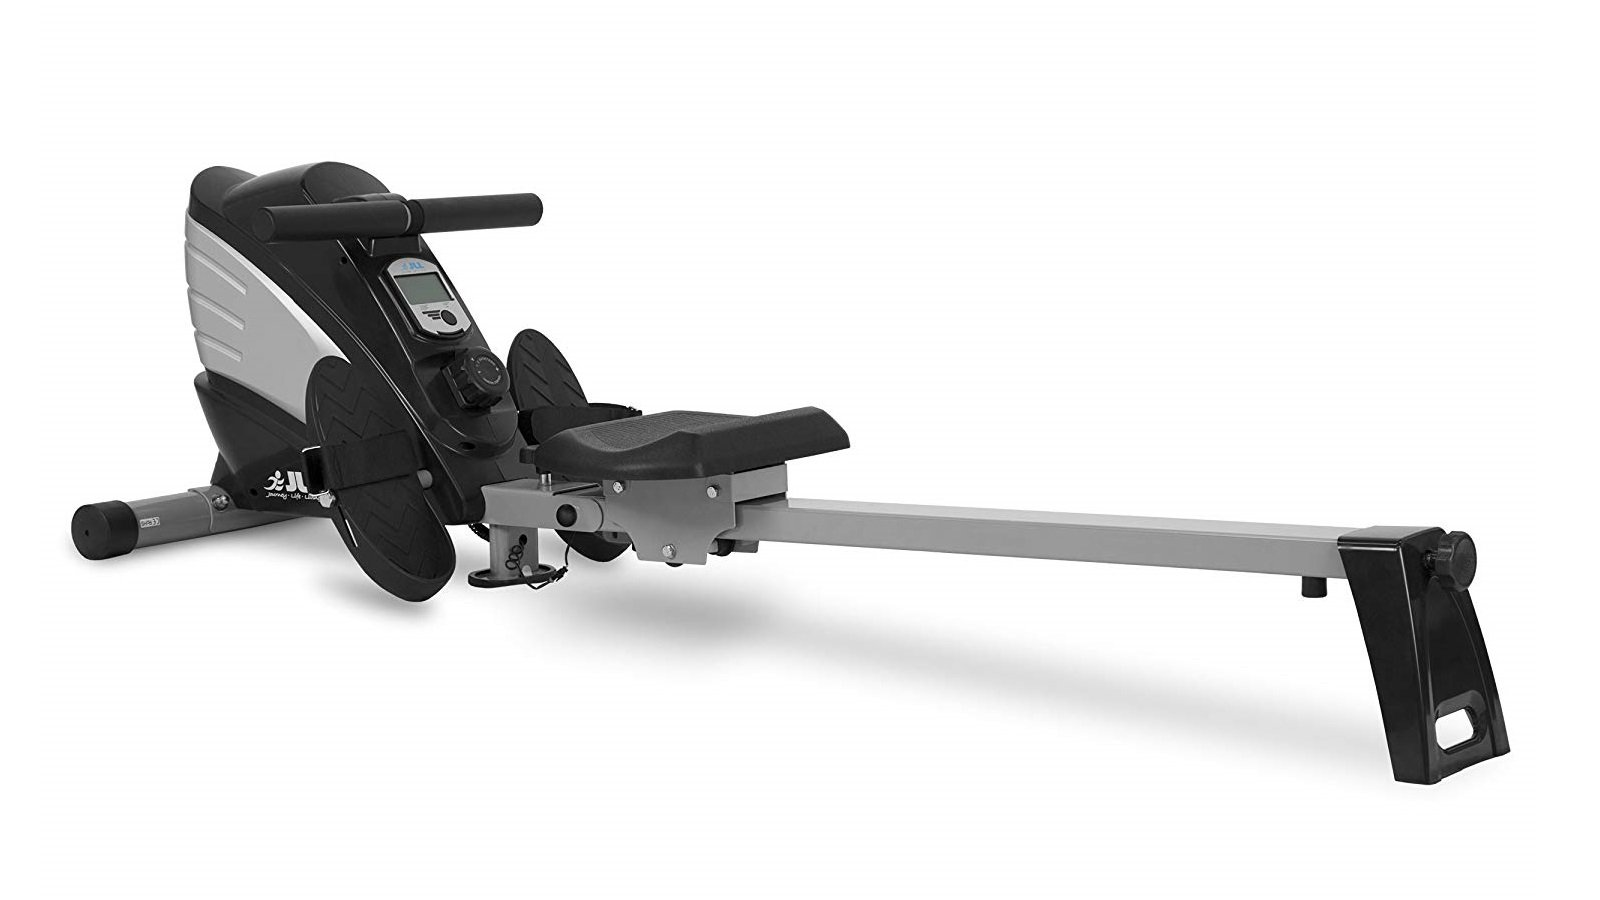 c92596c778d Amazon is currently offering 50% off the price of this Luxury Home Rowing  Machine by JLL. The R200 model would usually set you back £400